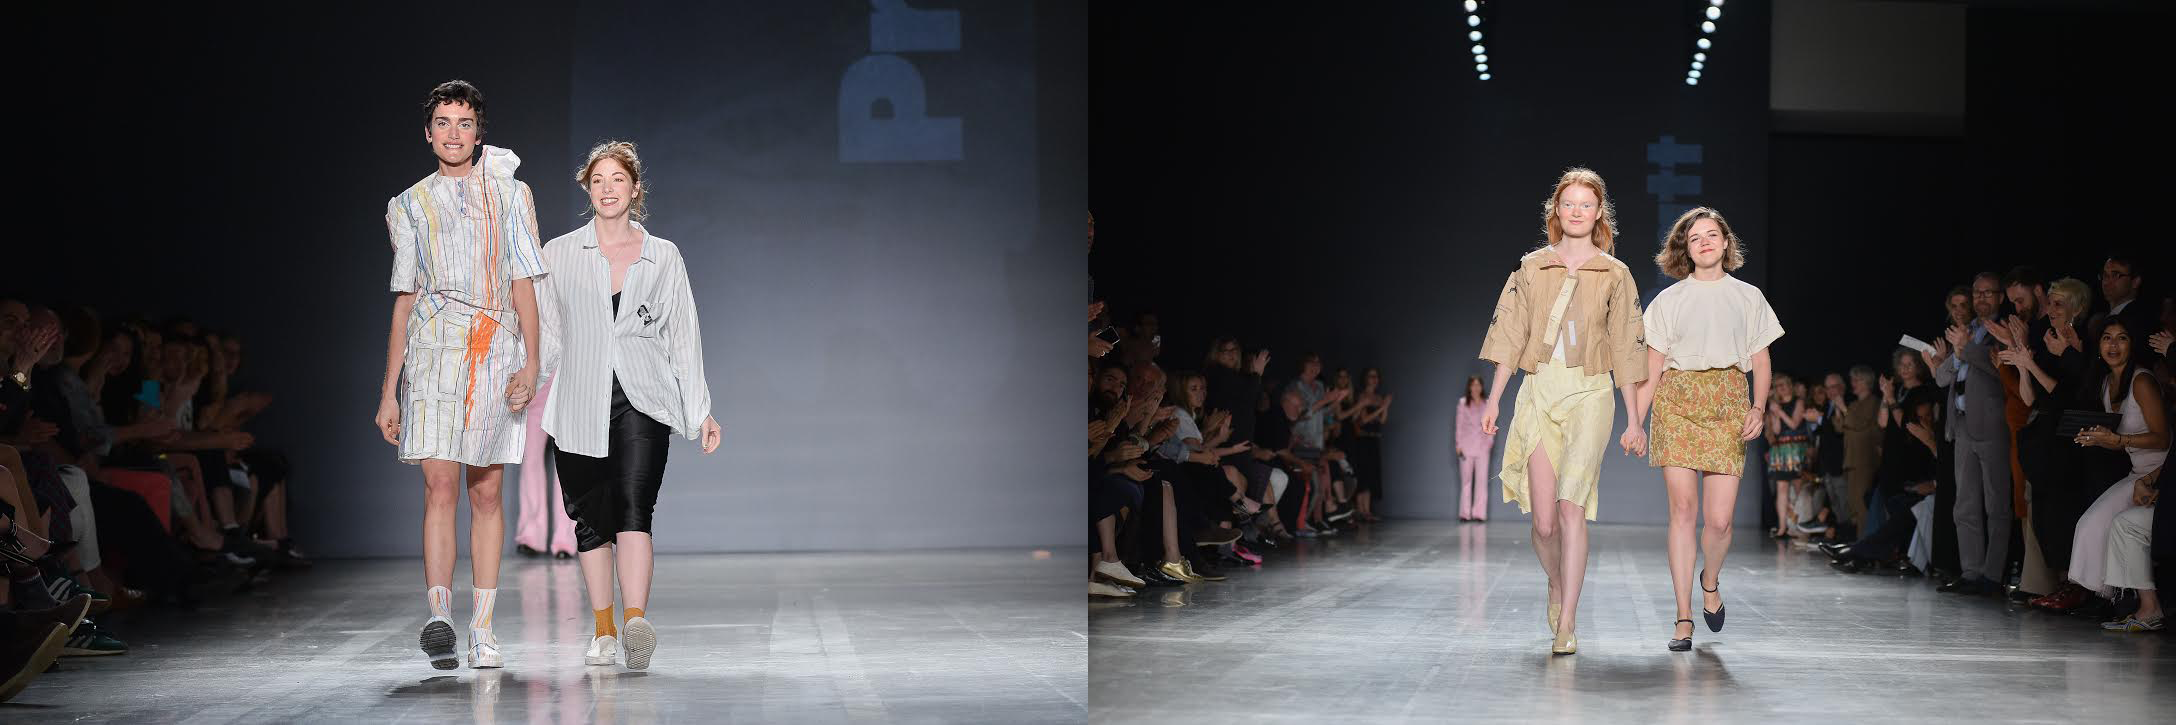 Graduating seniors Rachel Lee (left) and Emily Ridings (right) each walk the runway with a model wearing one of their looks at Pratt Shows: Fashion | Diversiform (photo: Fernando Colon)